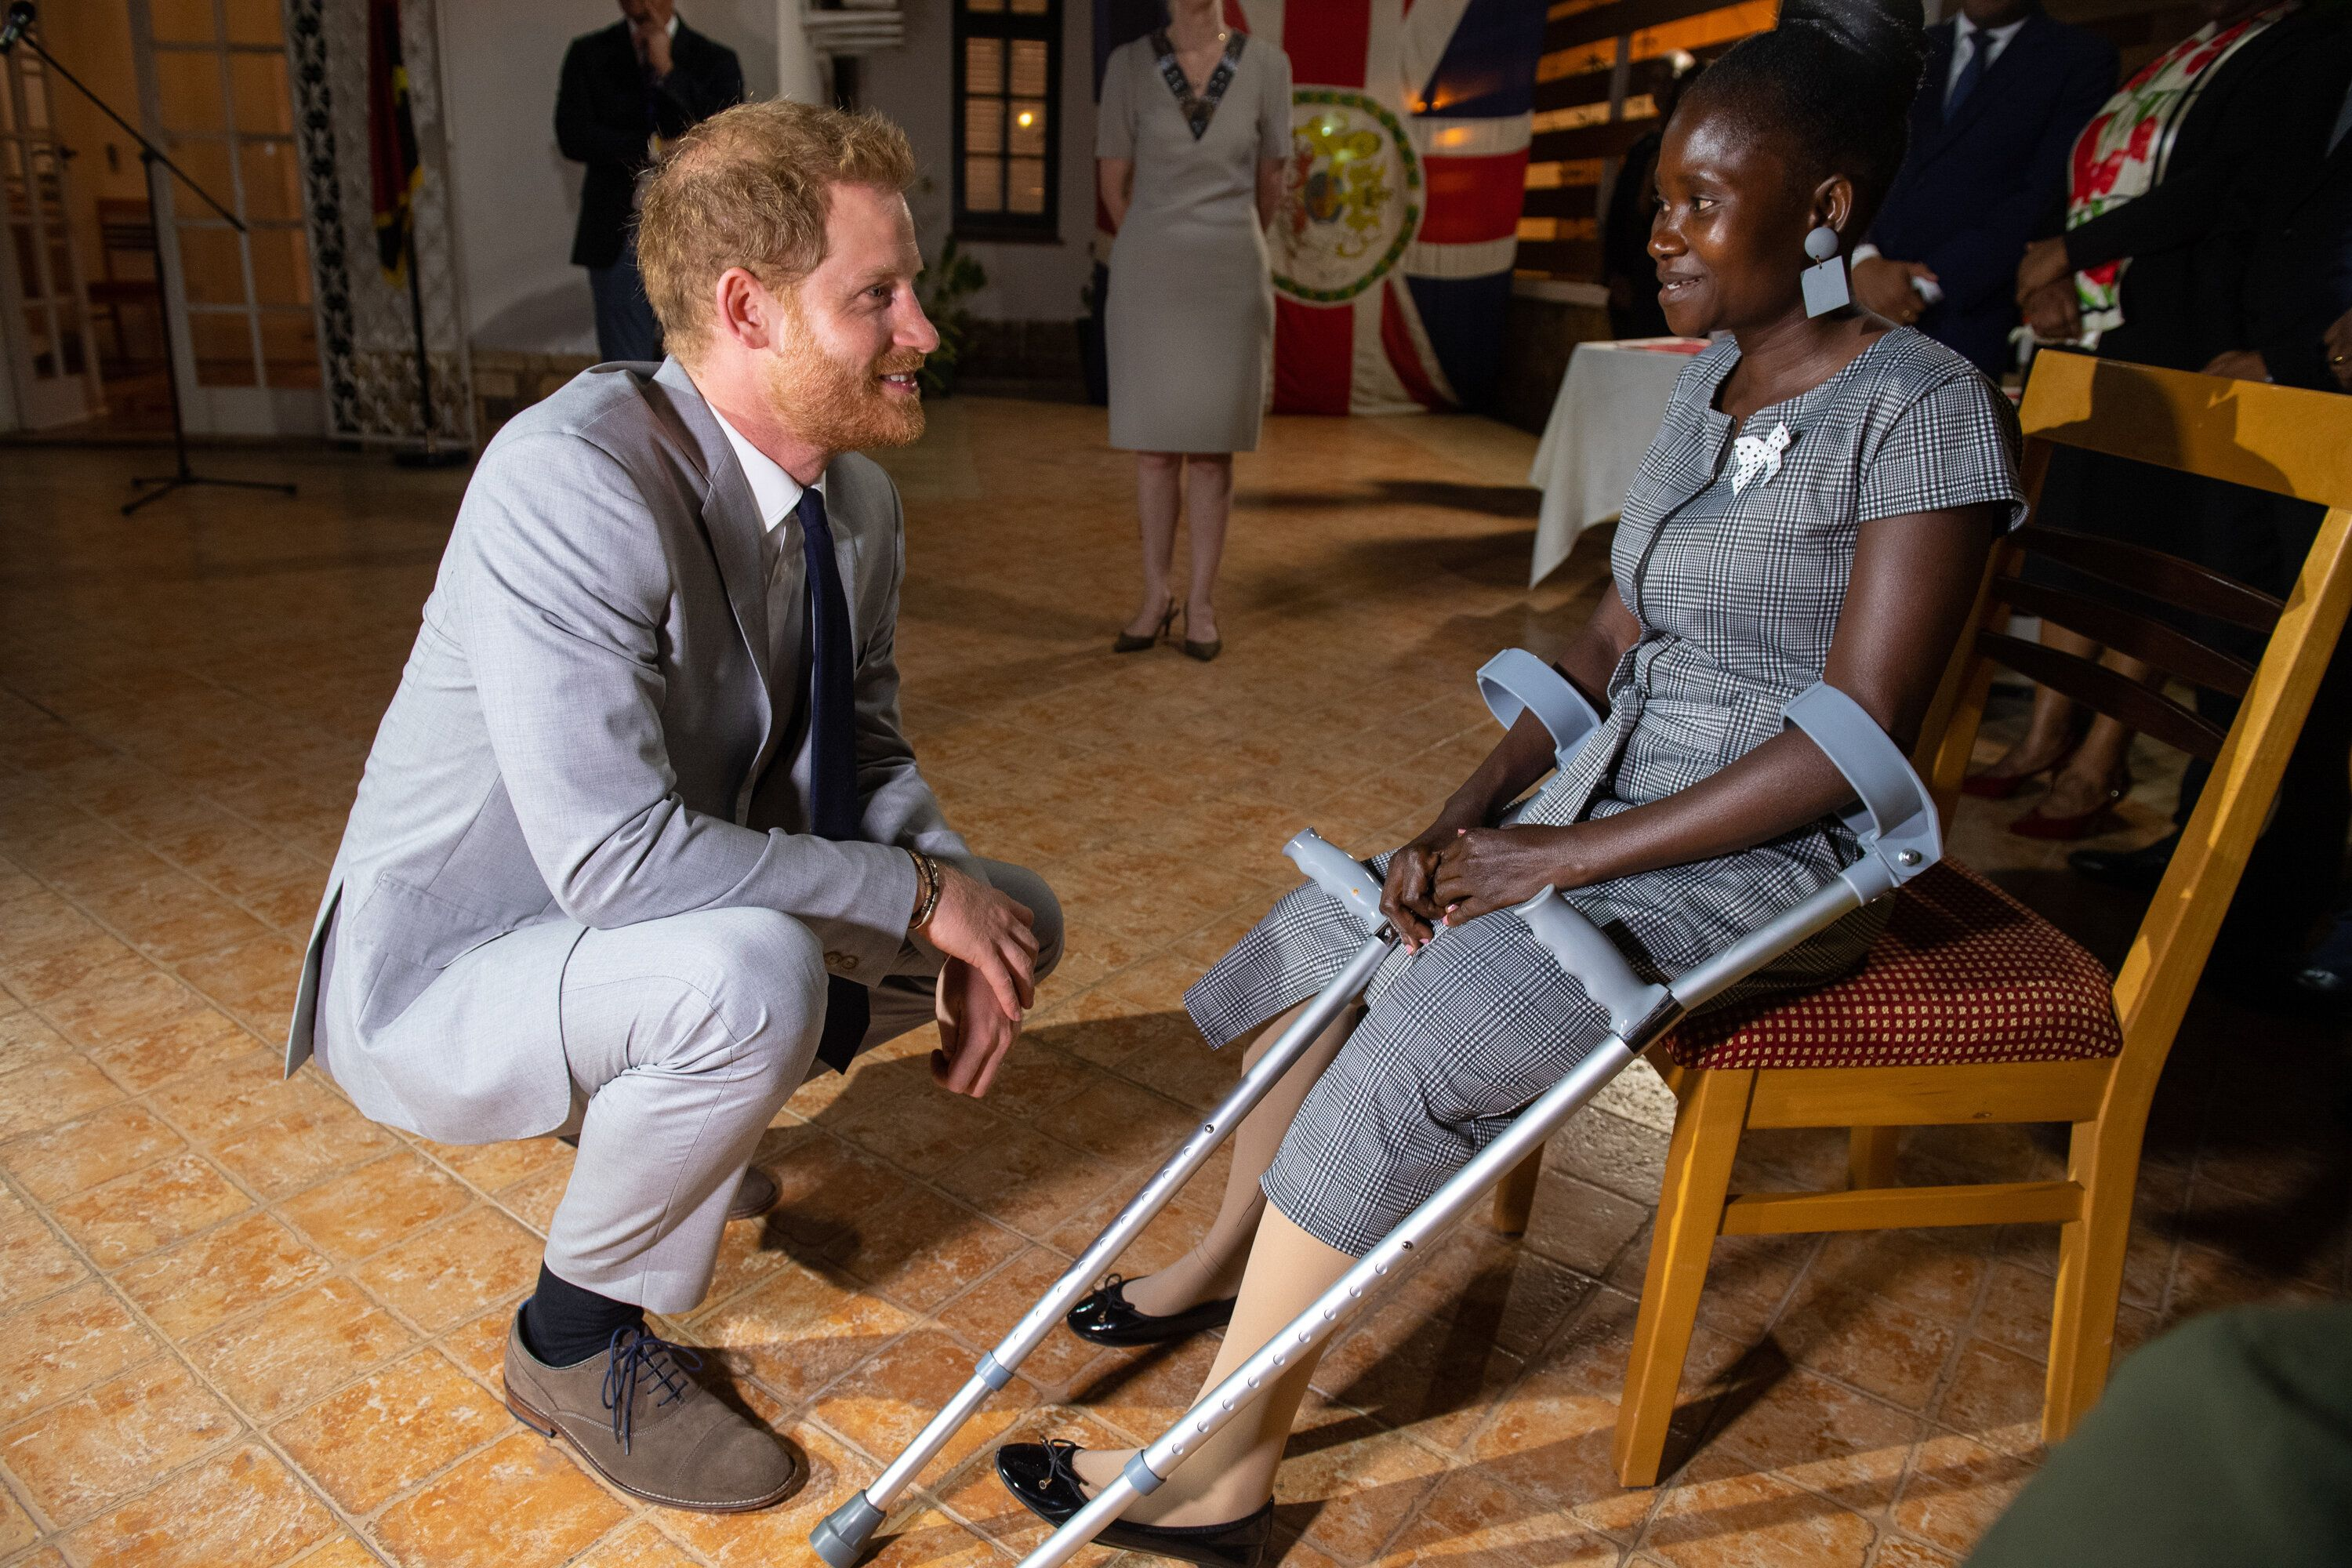 Prince Harry meets with Tigica as part of the Duke and Duchess of Sussex's royal tour.